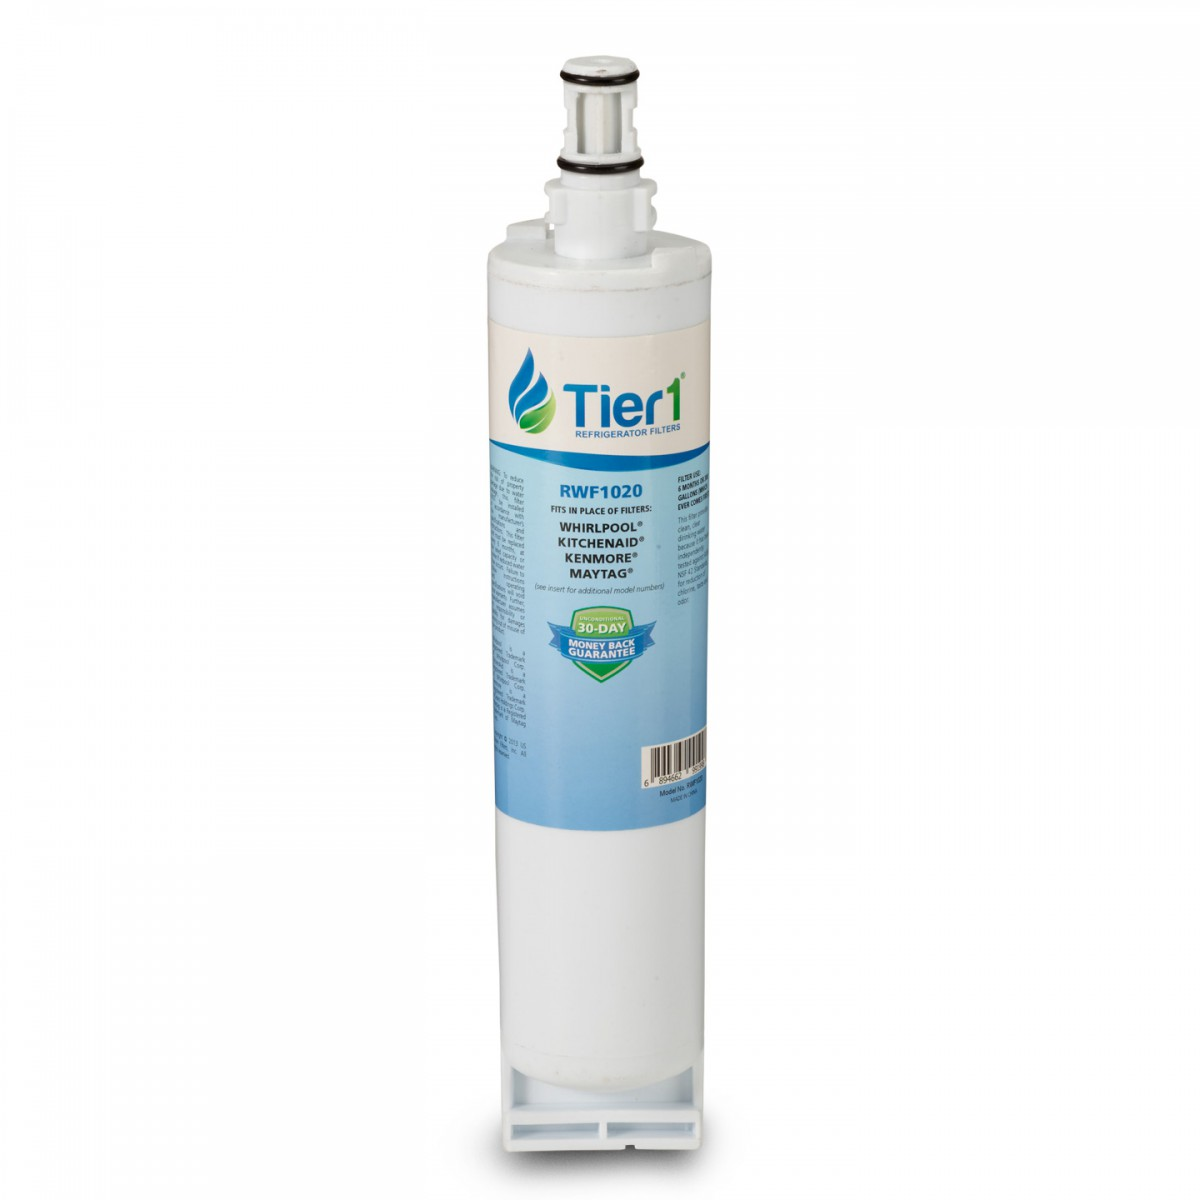 WF-NL240 Whirlpool Refrigerator Water Filter Replacement by Tier1